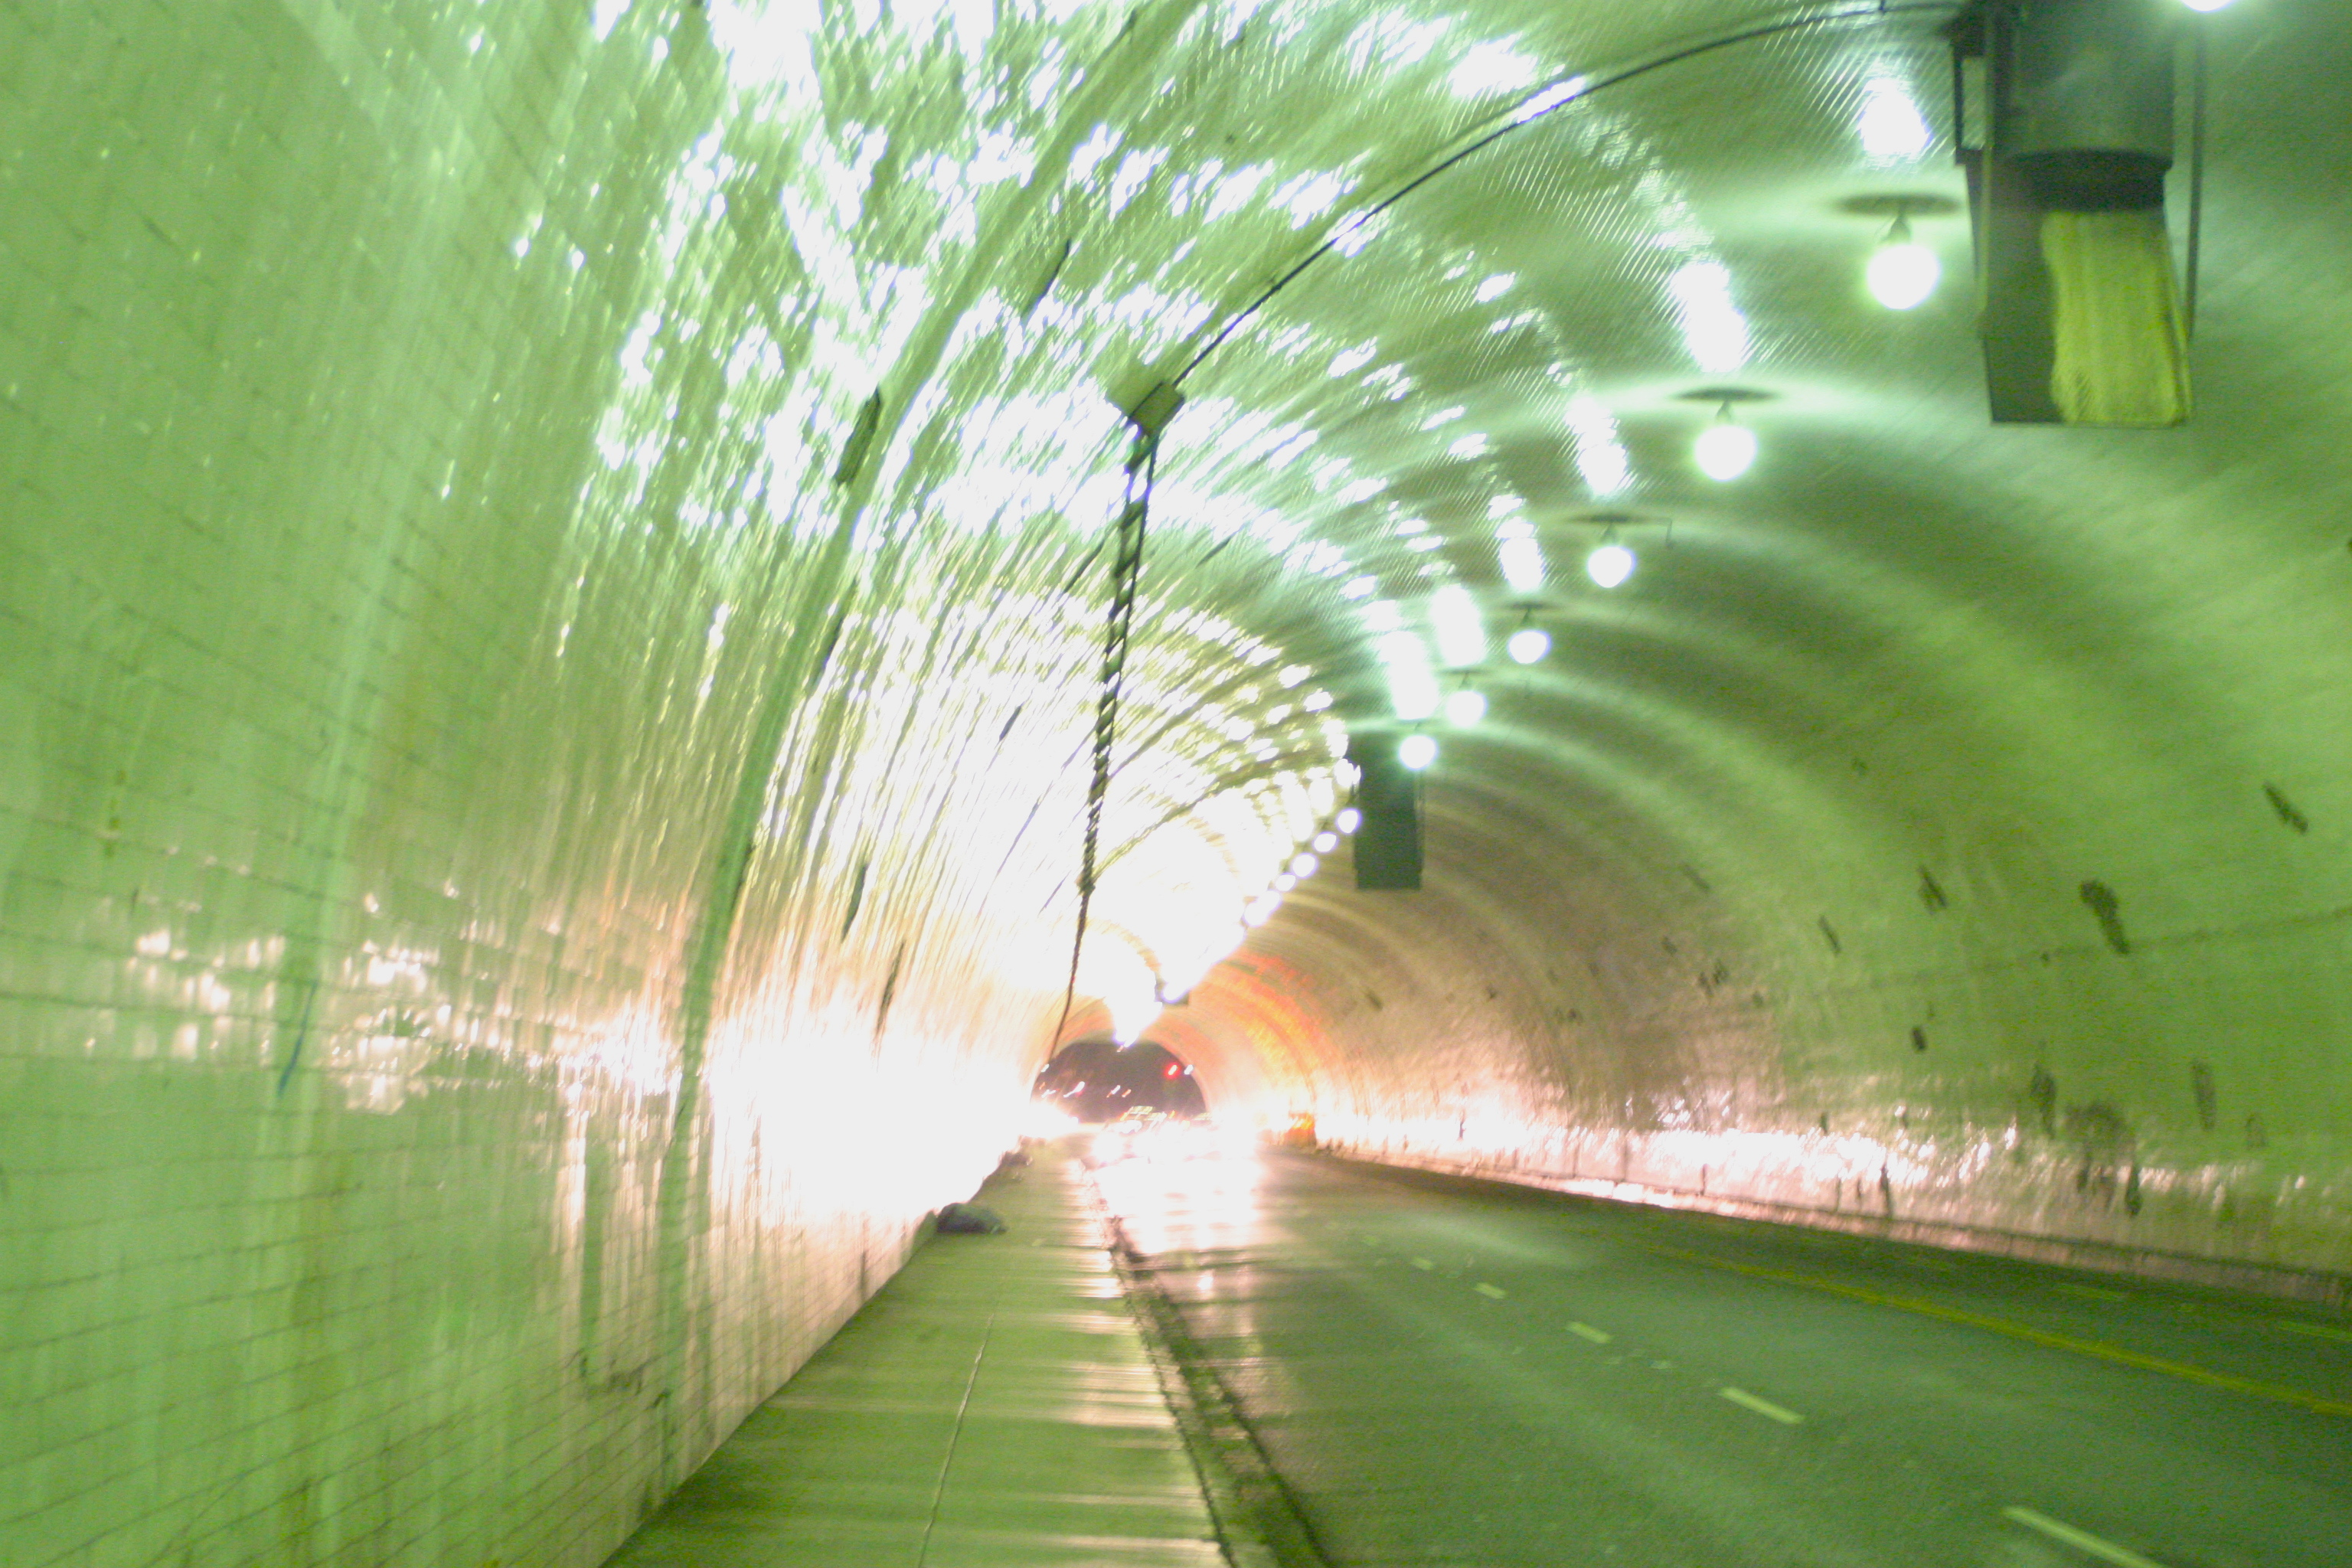 This Crazy Reflective Tunnel that is in pretty much every commercial with a tunnel and was shot in LA.